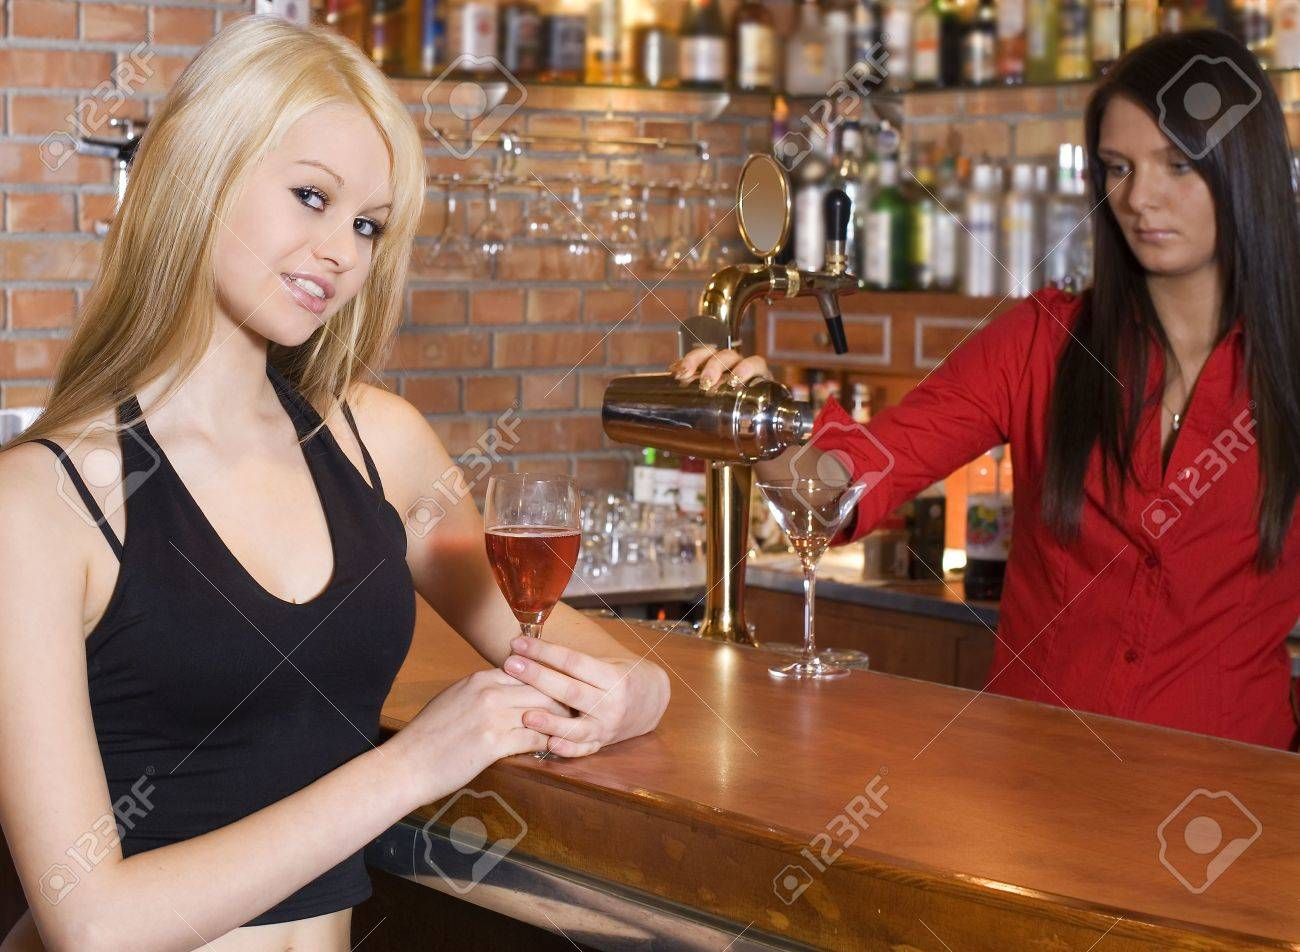 blond girl near the bar with a red cocktail and a barman with shaker focus on the girl Stock Photo - 3307781